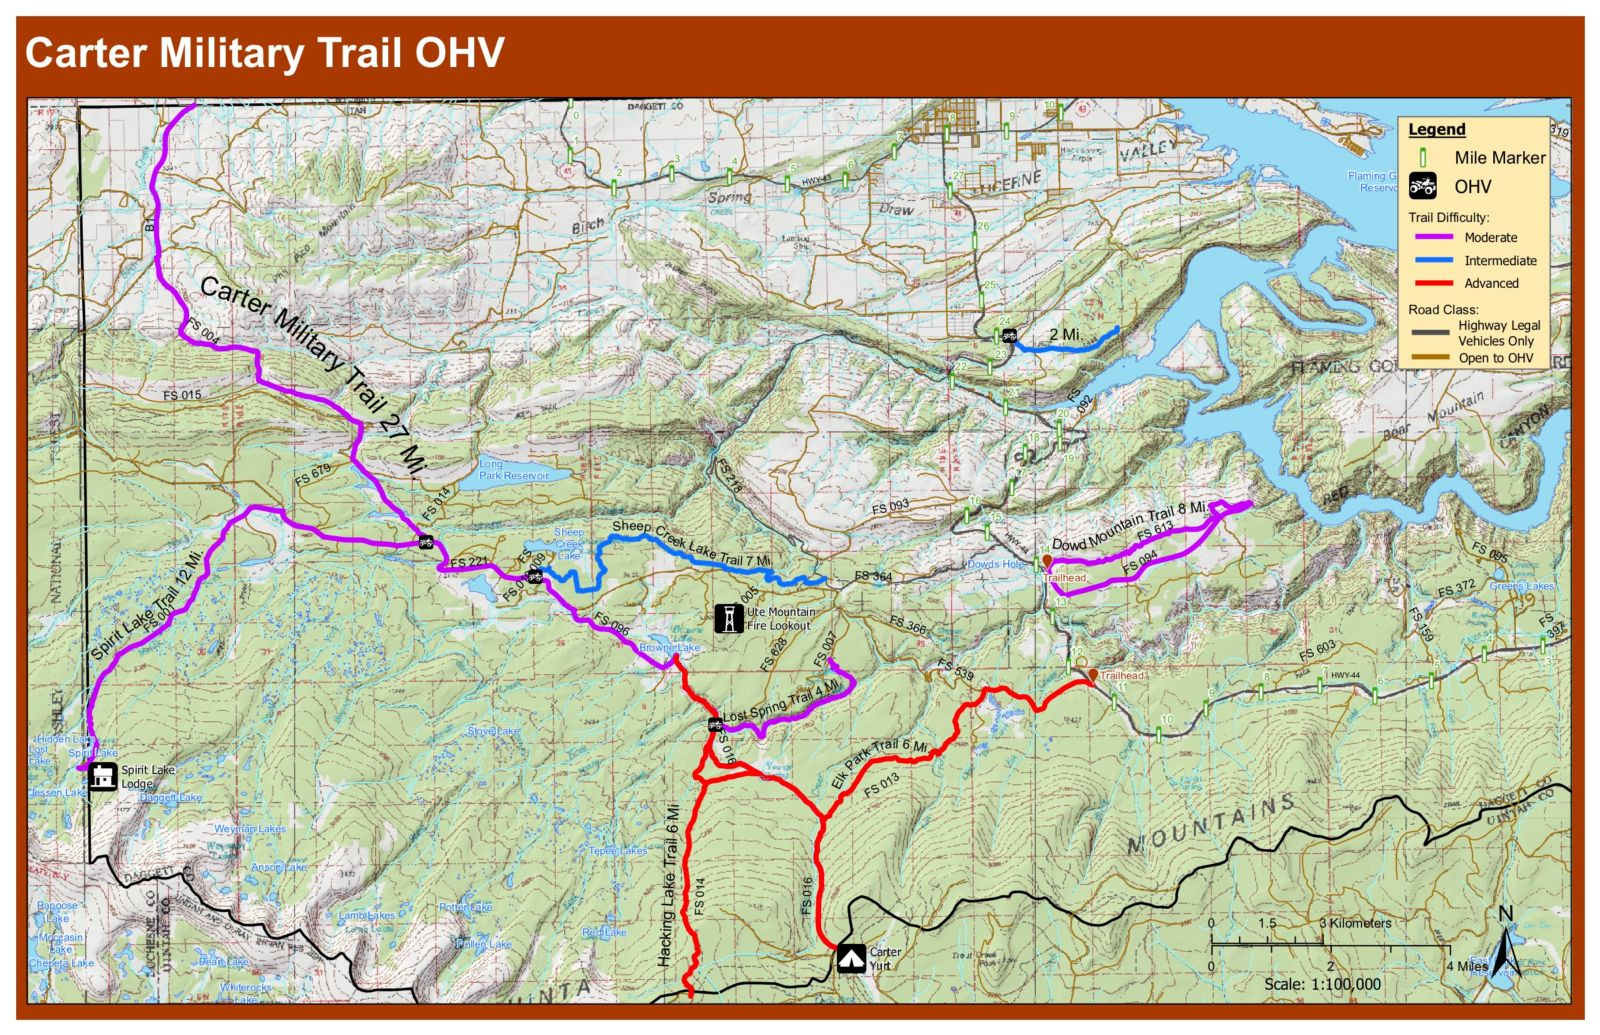 Carter Military Trail OHV Map Flaming Gorge